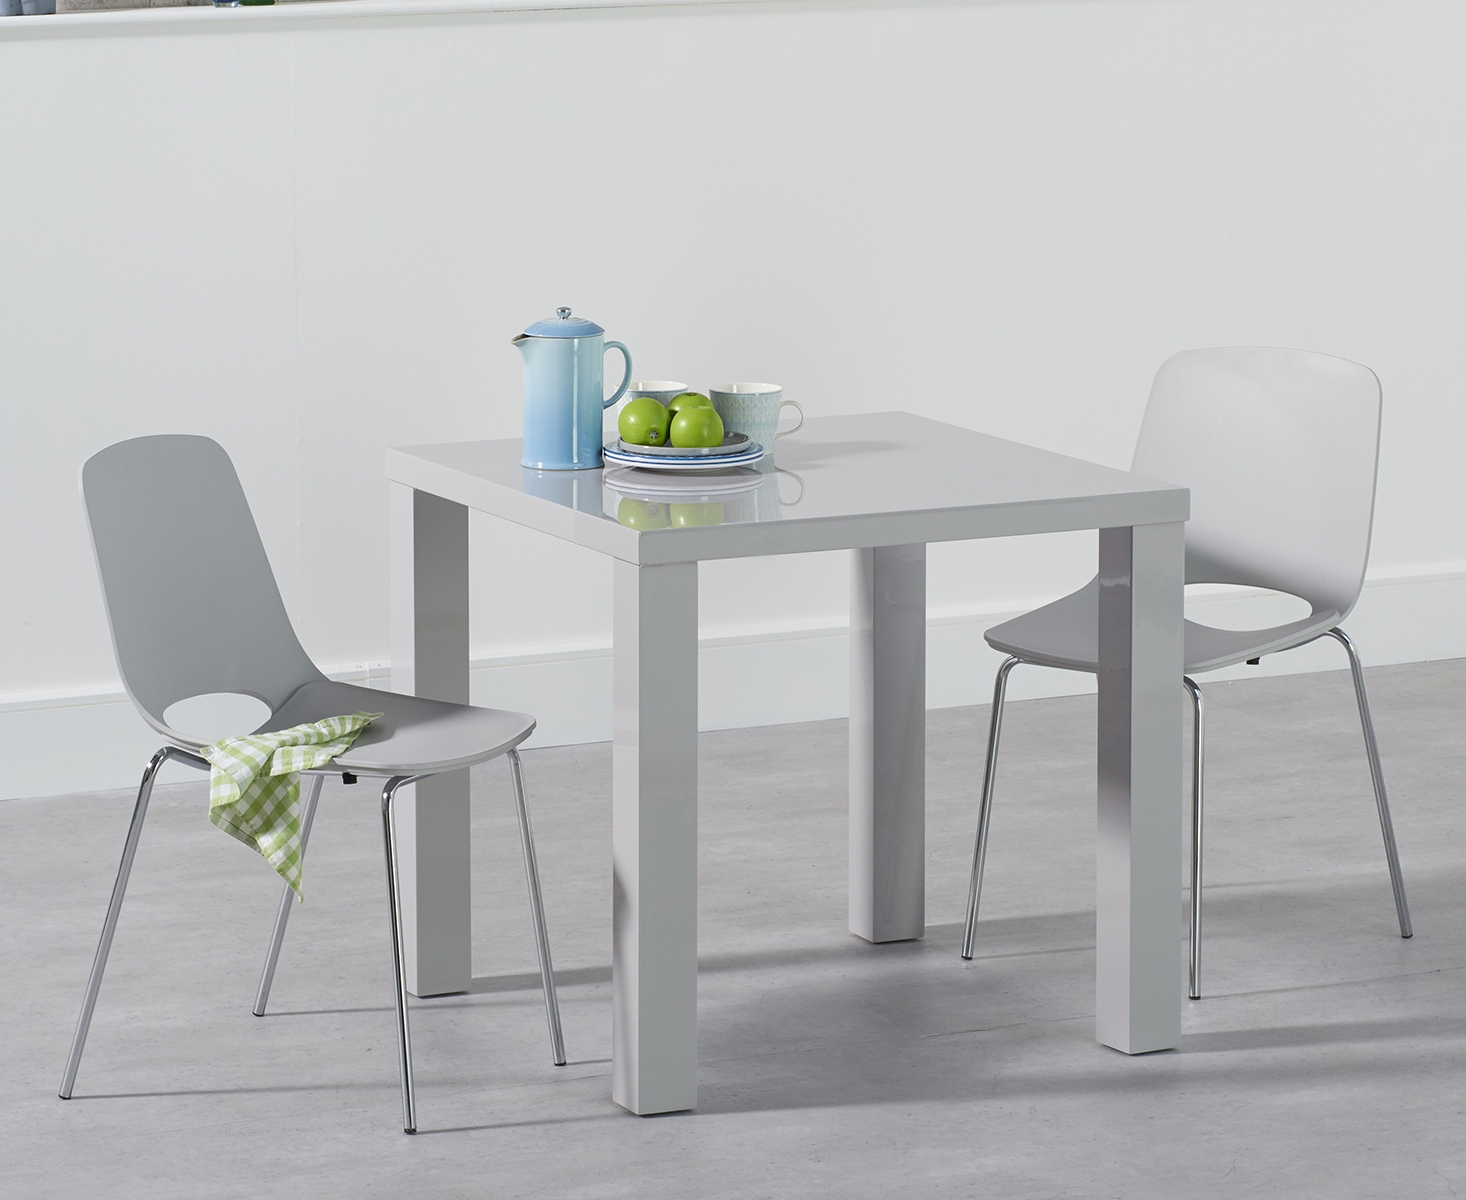 An image of Atlanta 80cm Light Grey High Gloss Dining Table with Nordic Chrome Leg Chairs